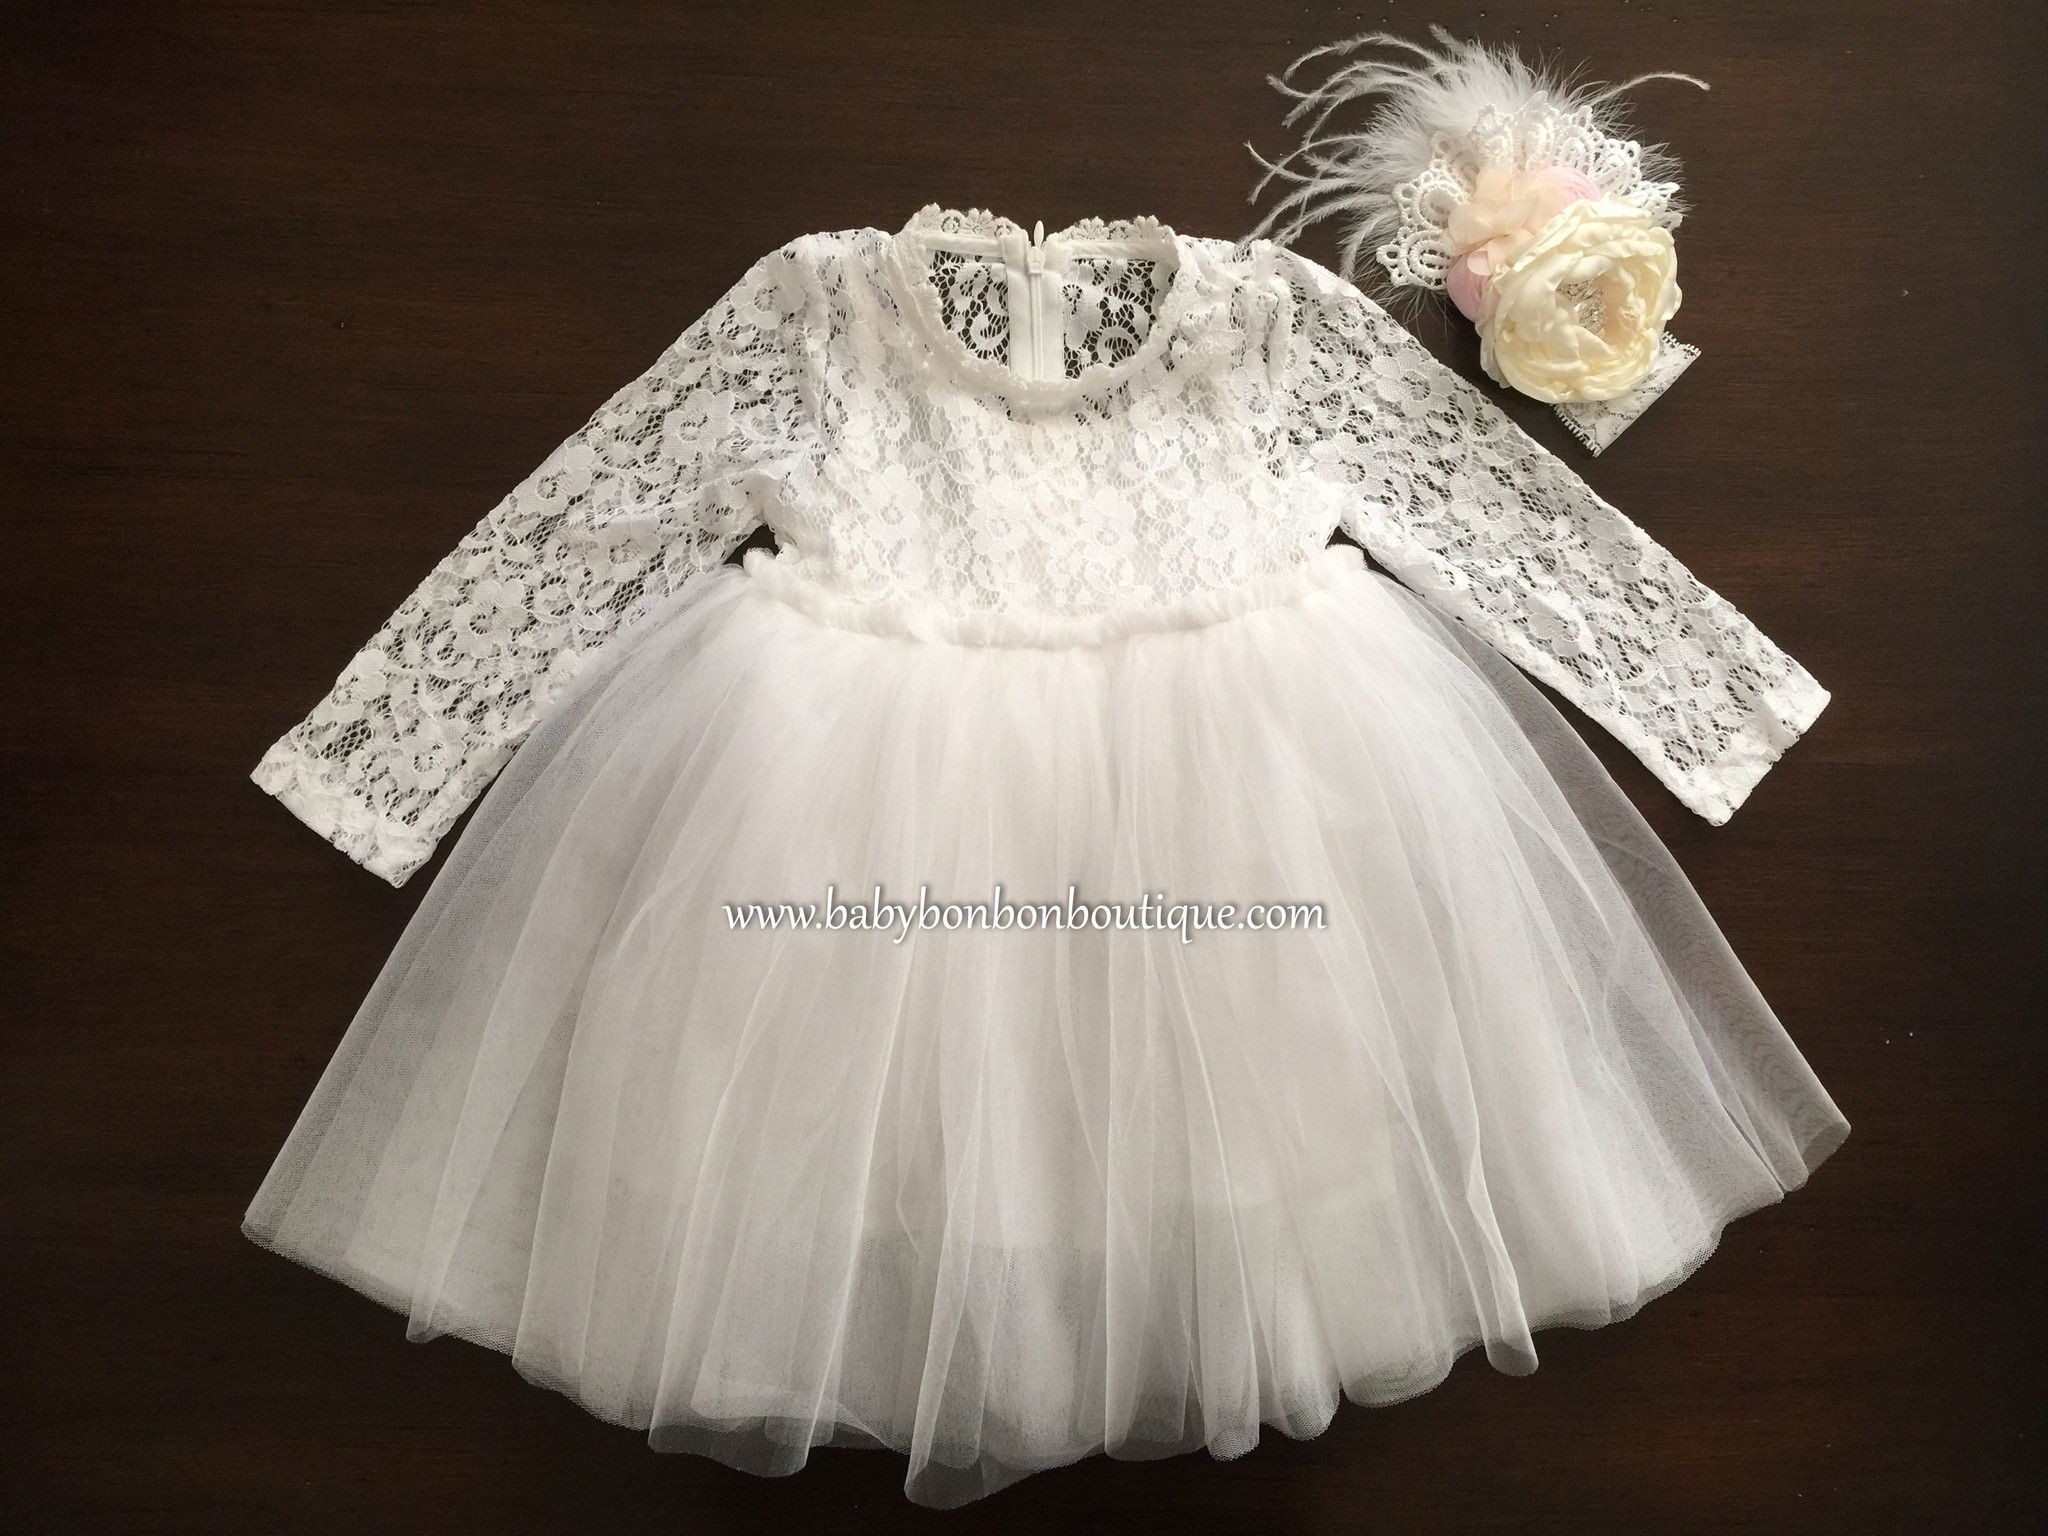 Baby Christening Gowns Awesome Baby Baptism Dresses Oasis Amor Fashion Of Incredible 40 Models Baby Christening Gowns